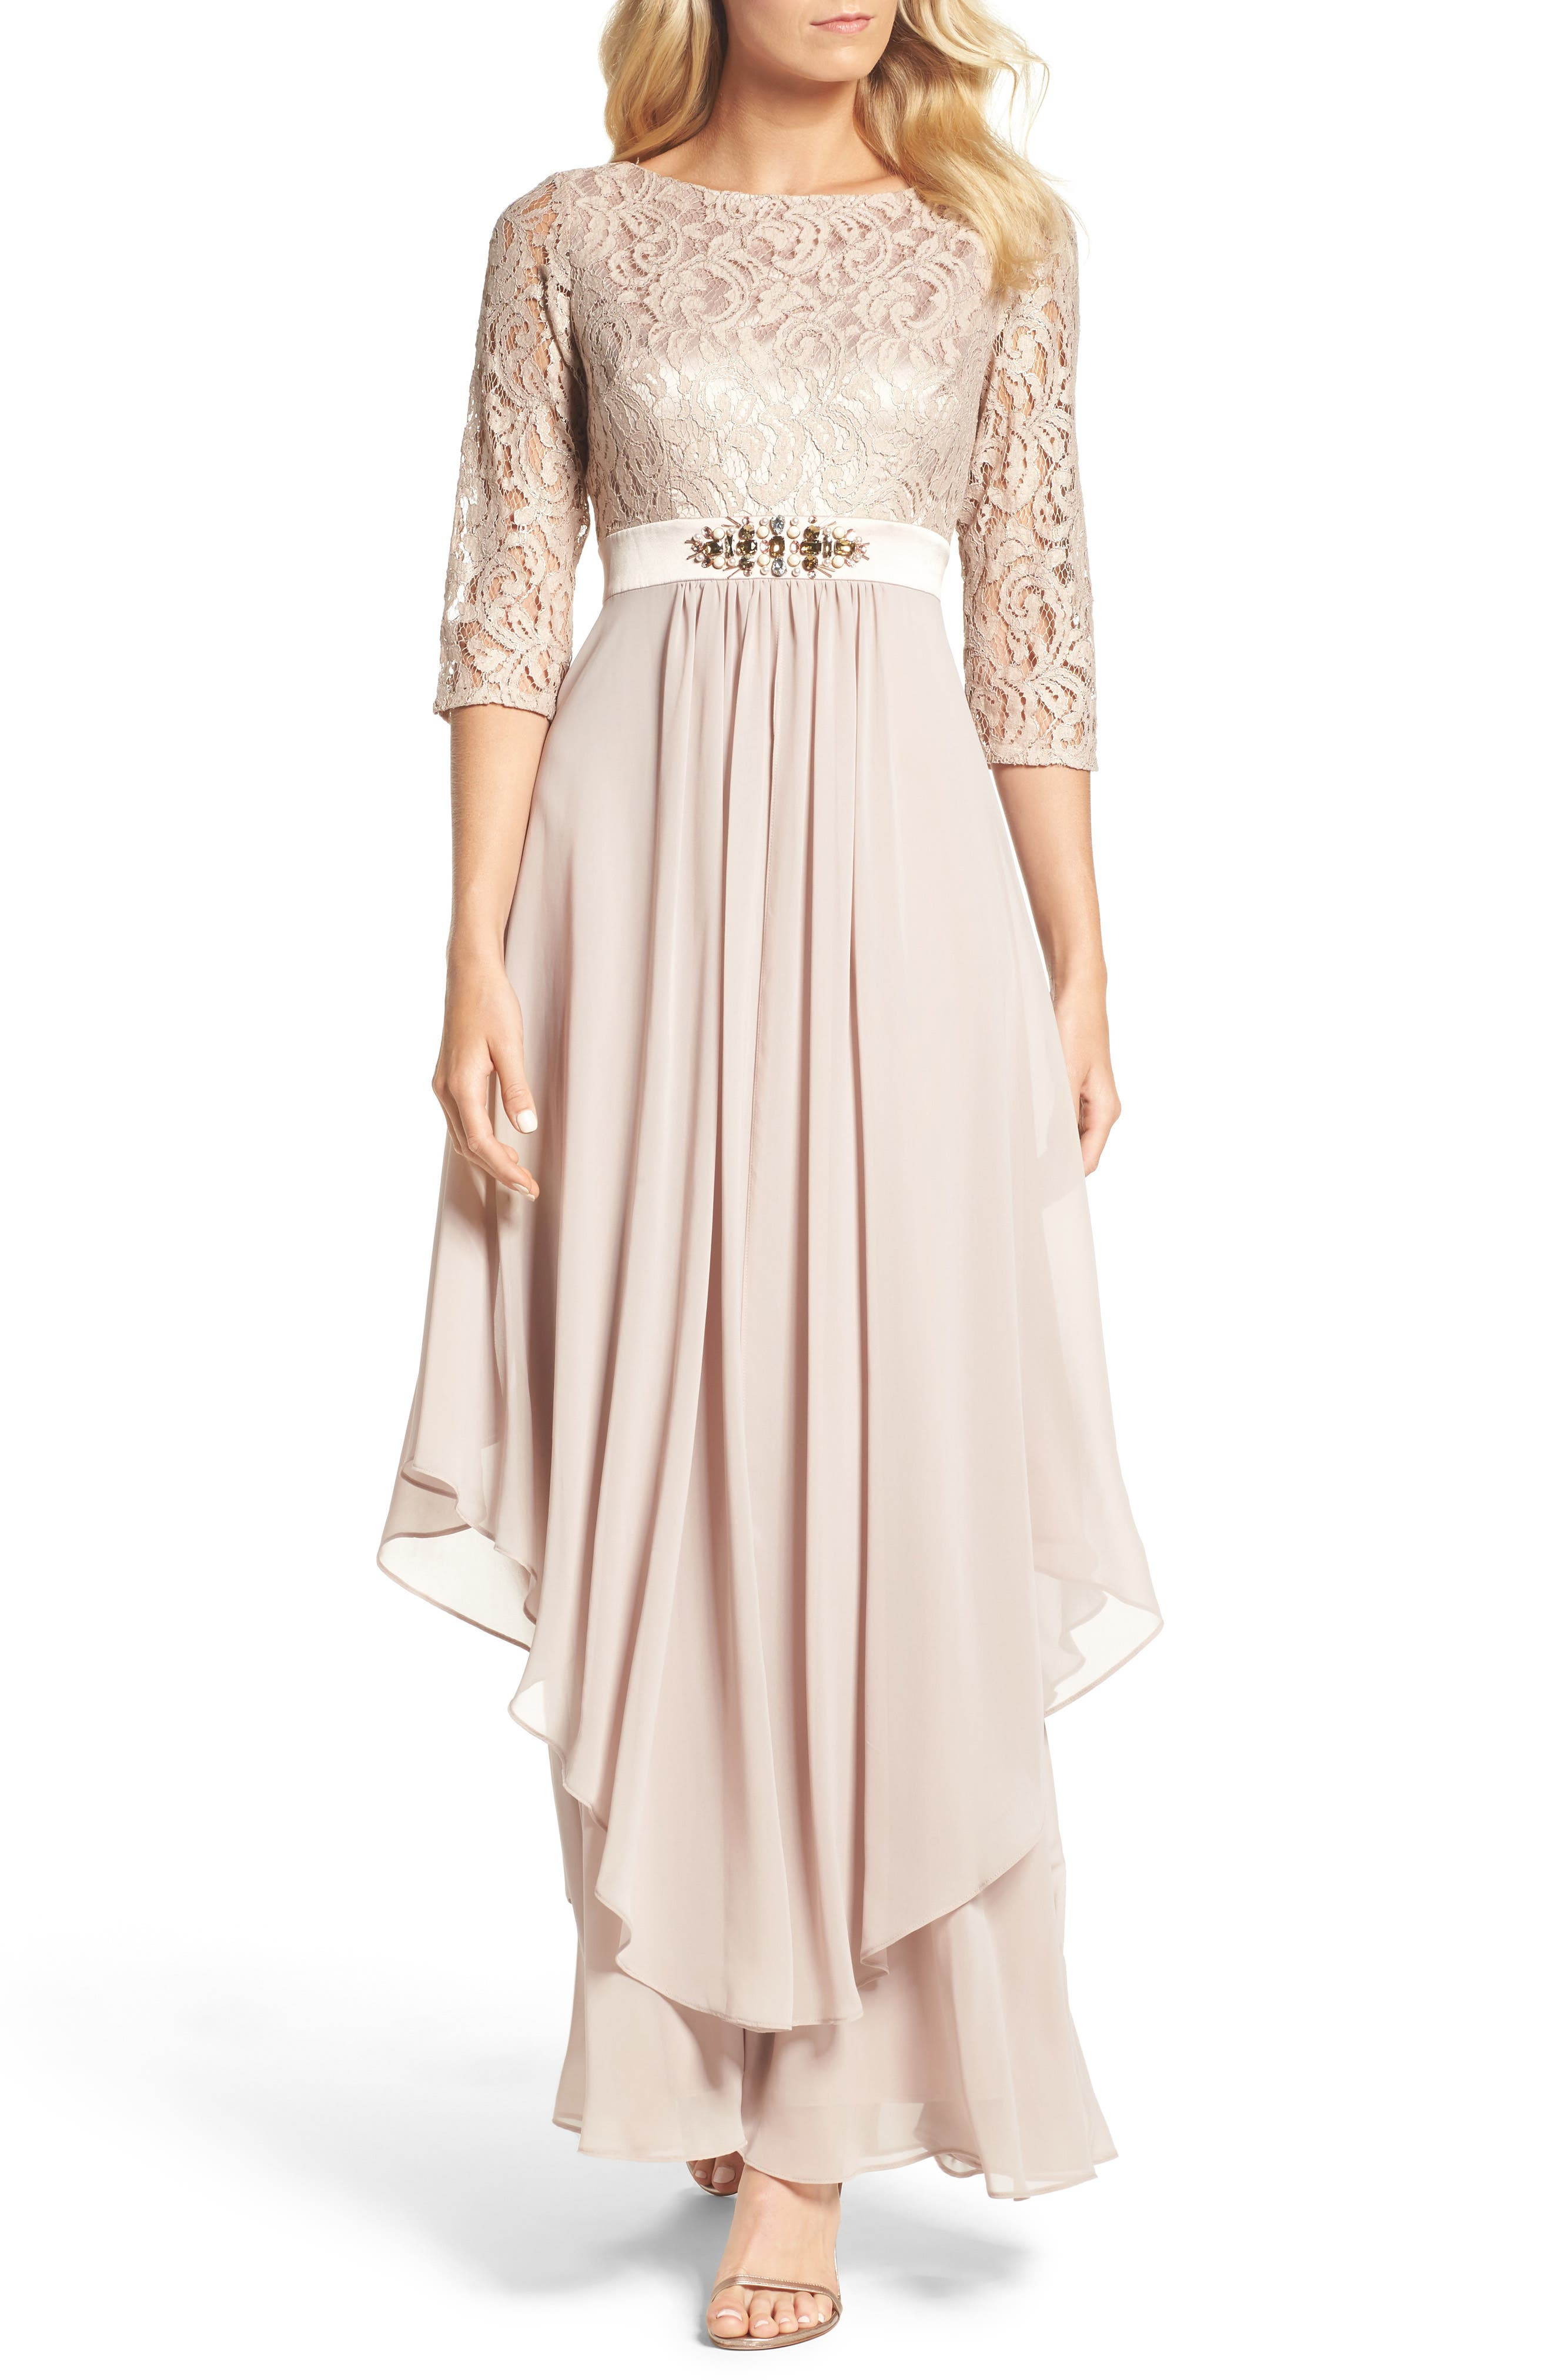 Alternate Image 1 Selected - Eliza J Embellished Lace & Chiffon Gown